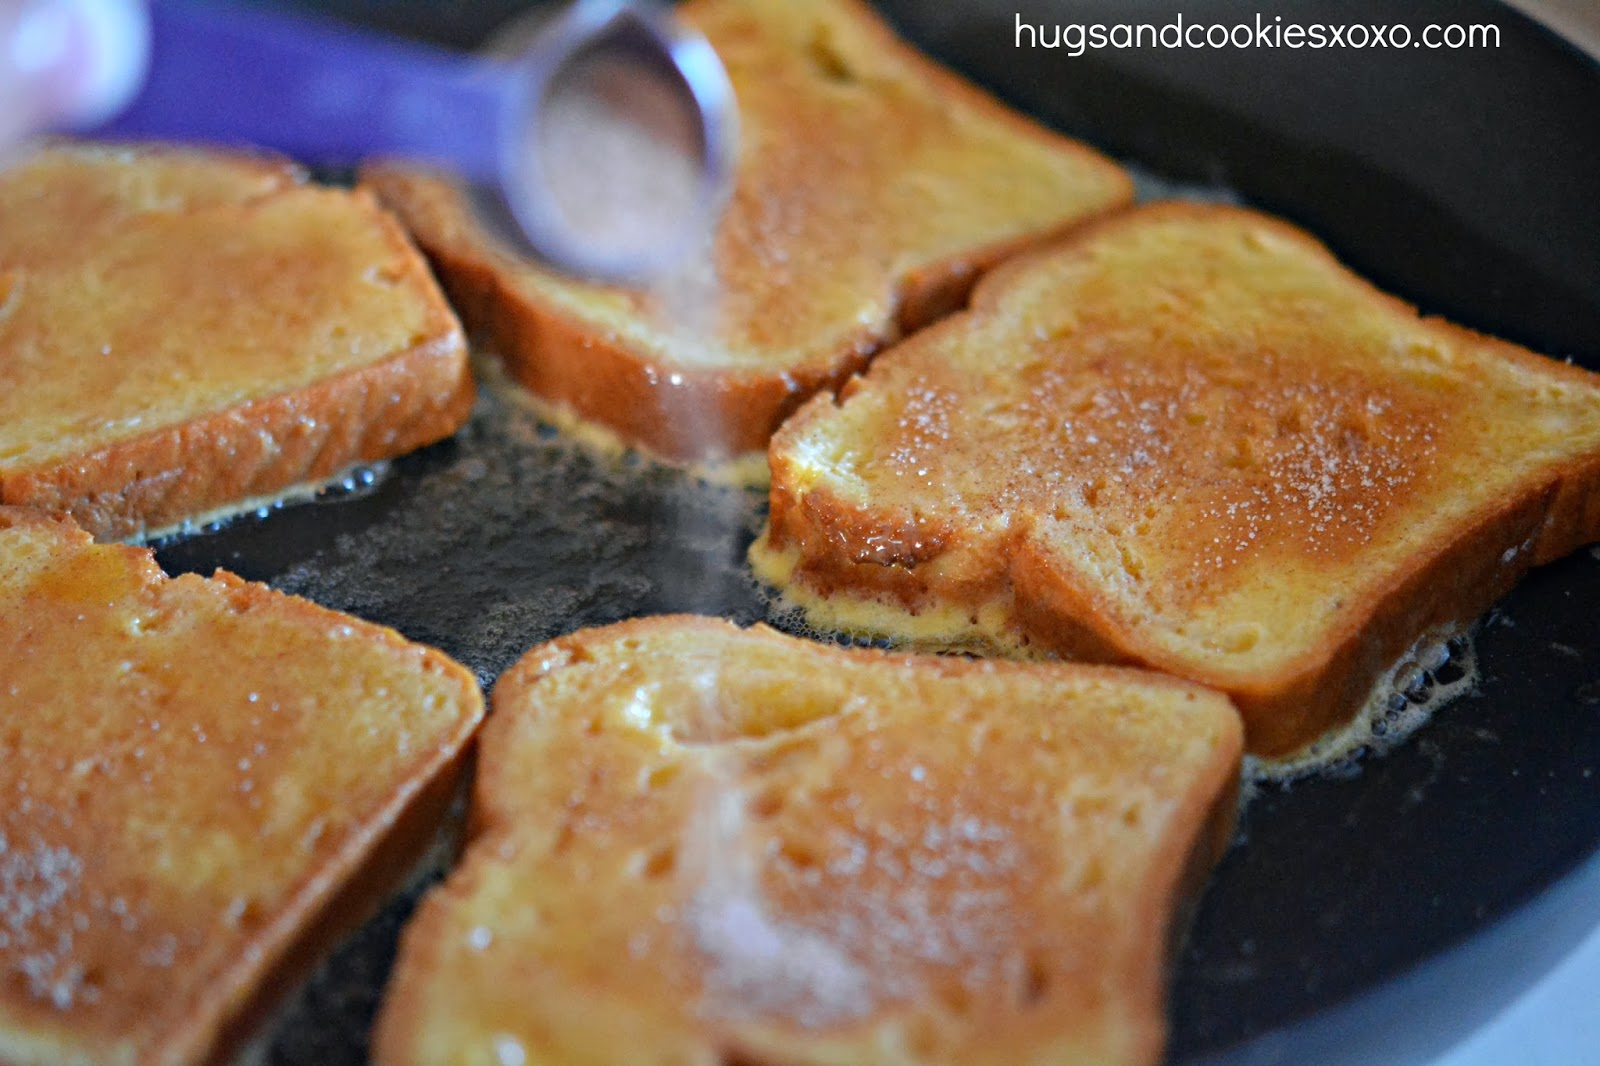 This cinnamon and sugar french toast is a perfect weekend breakfast ...